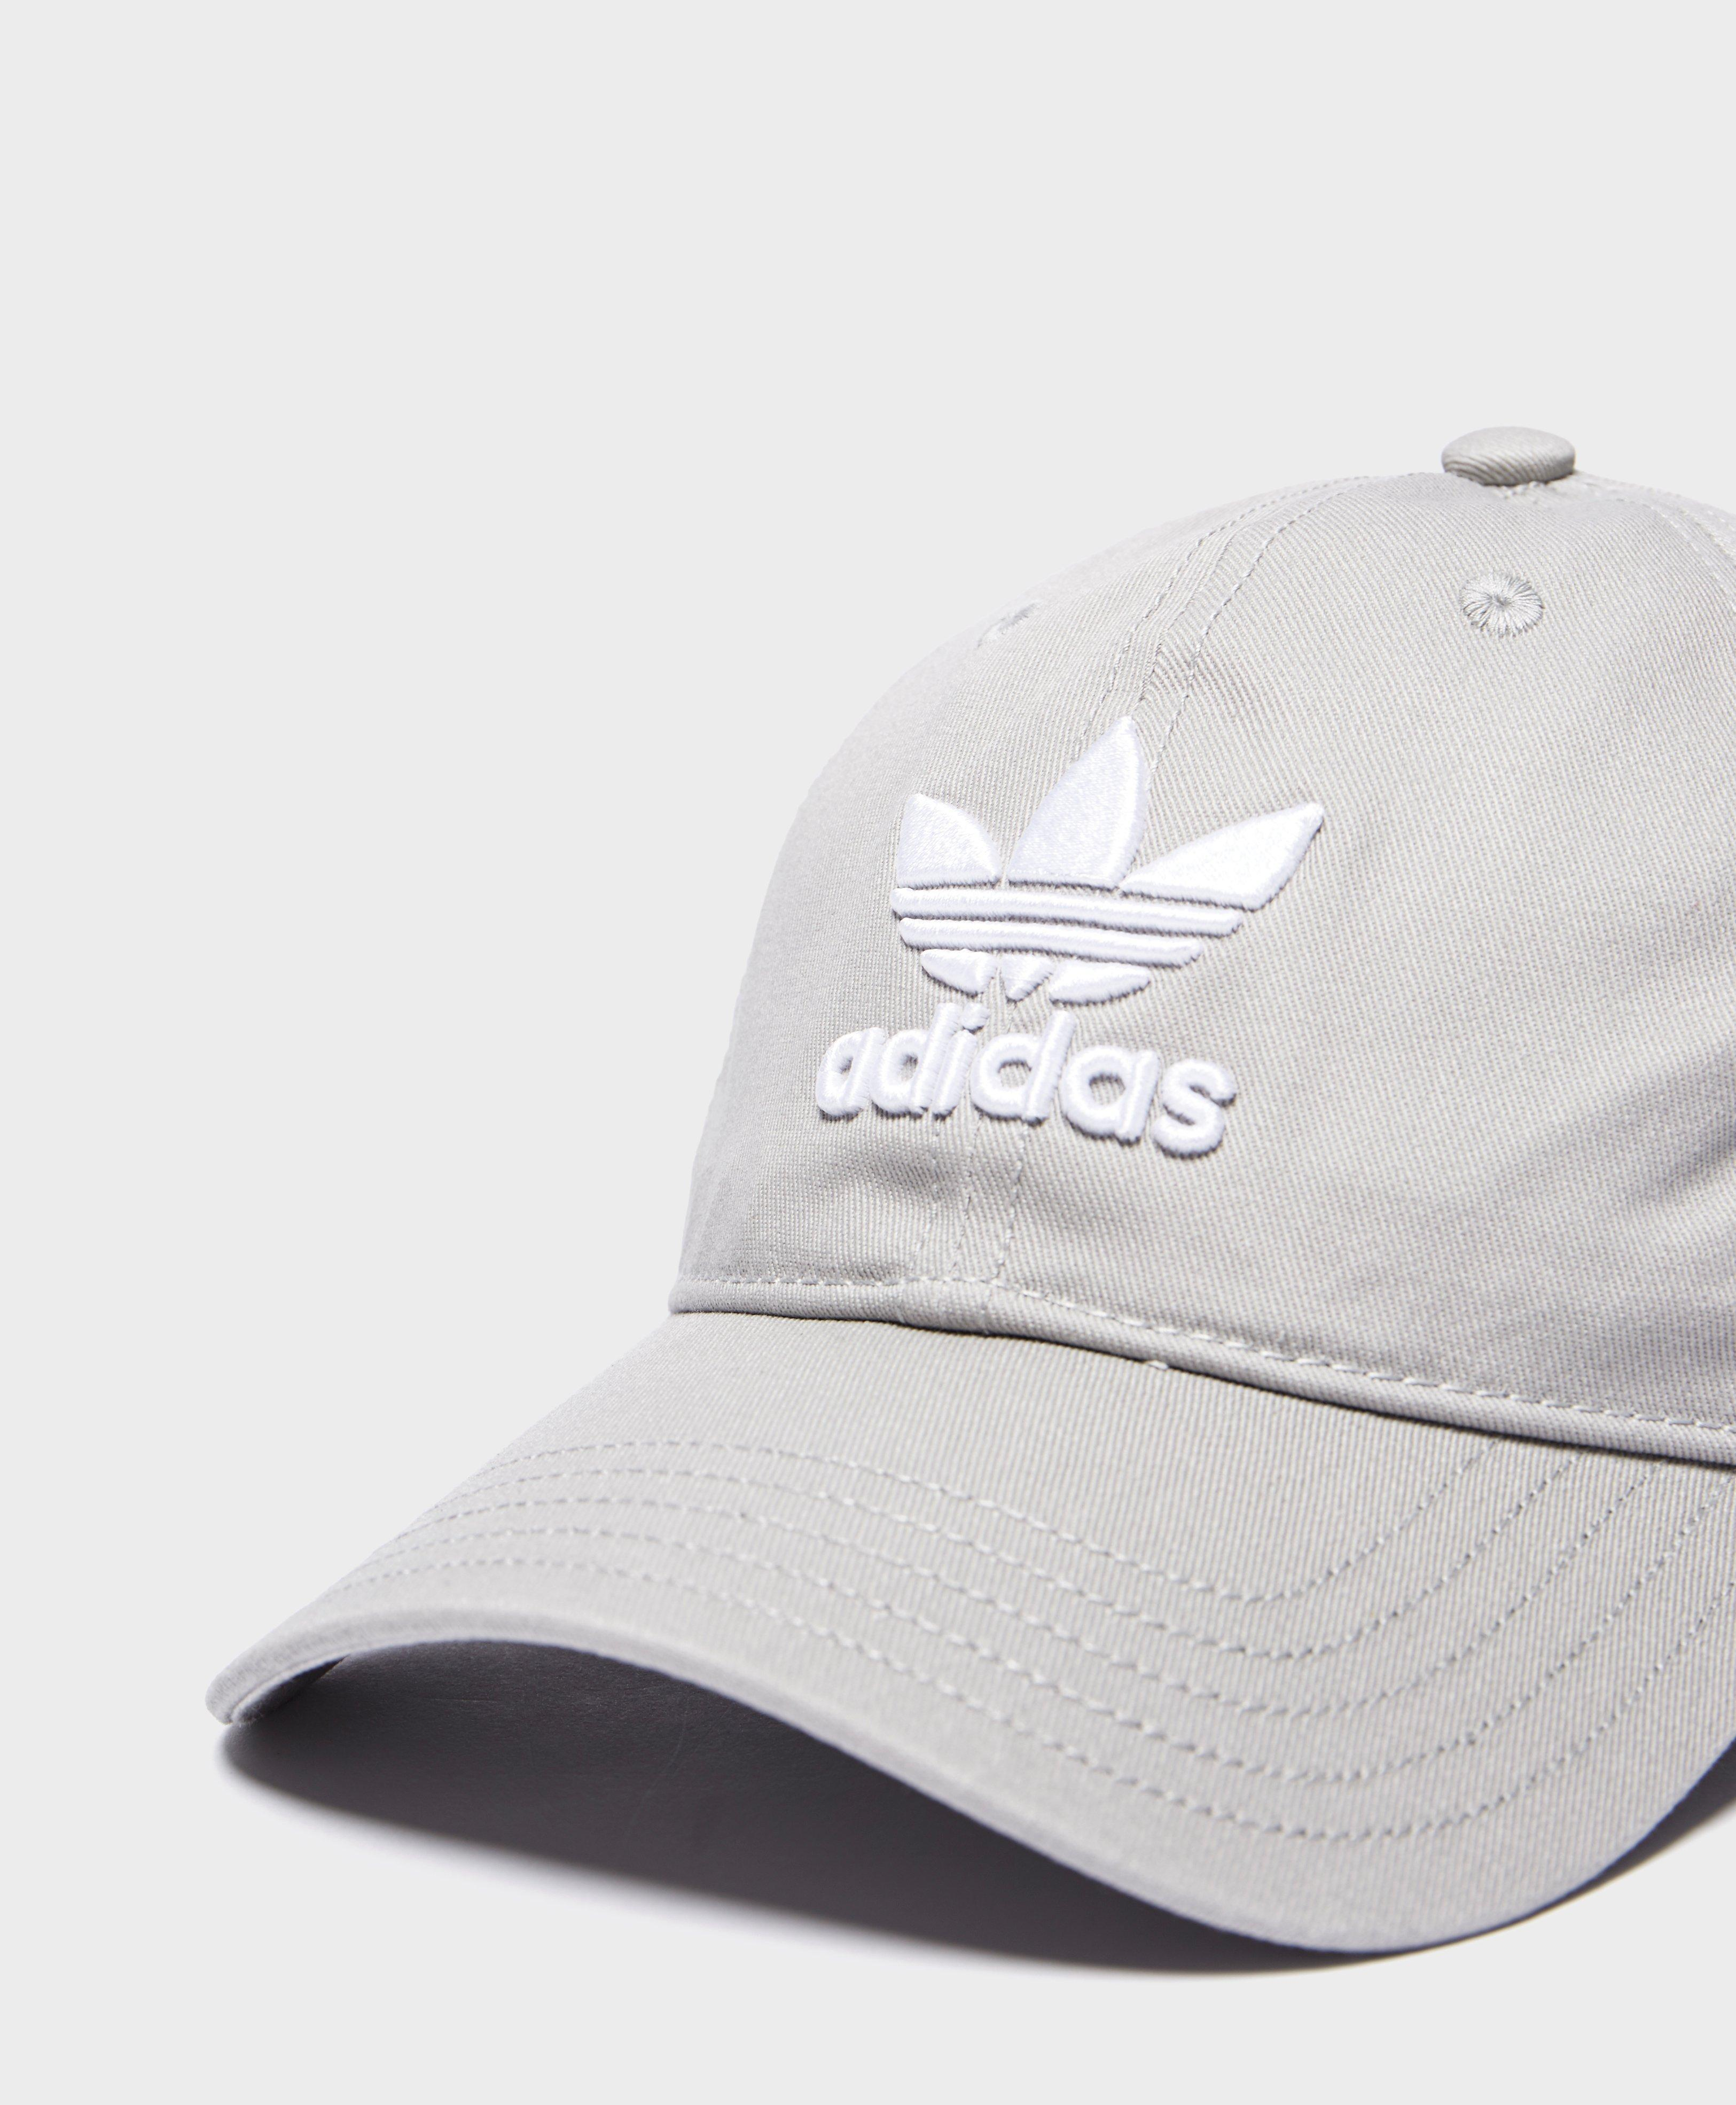 8566d287b9383 Lyst - adidas Originals Trefoil Classic Cap for Men